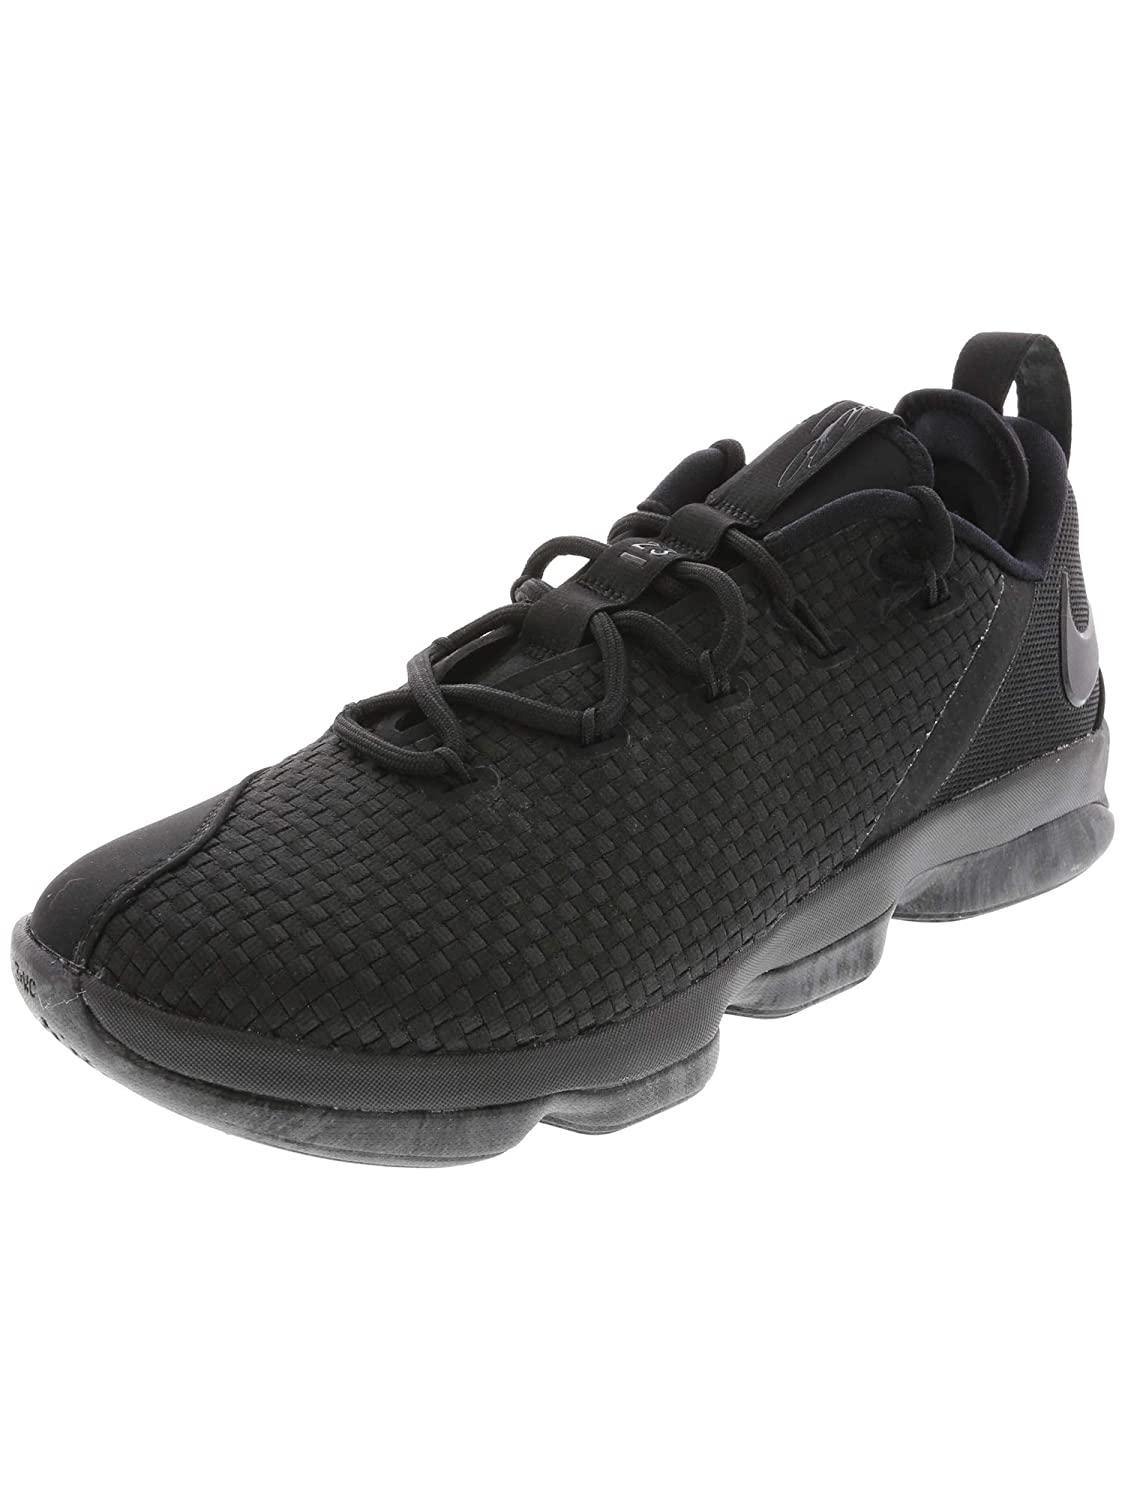 watch 22859 2ed8e Nike Lebron XIV Low, Black/Black-Dary Grey 10: Buy Online at ...